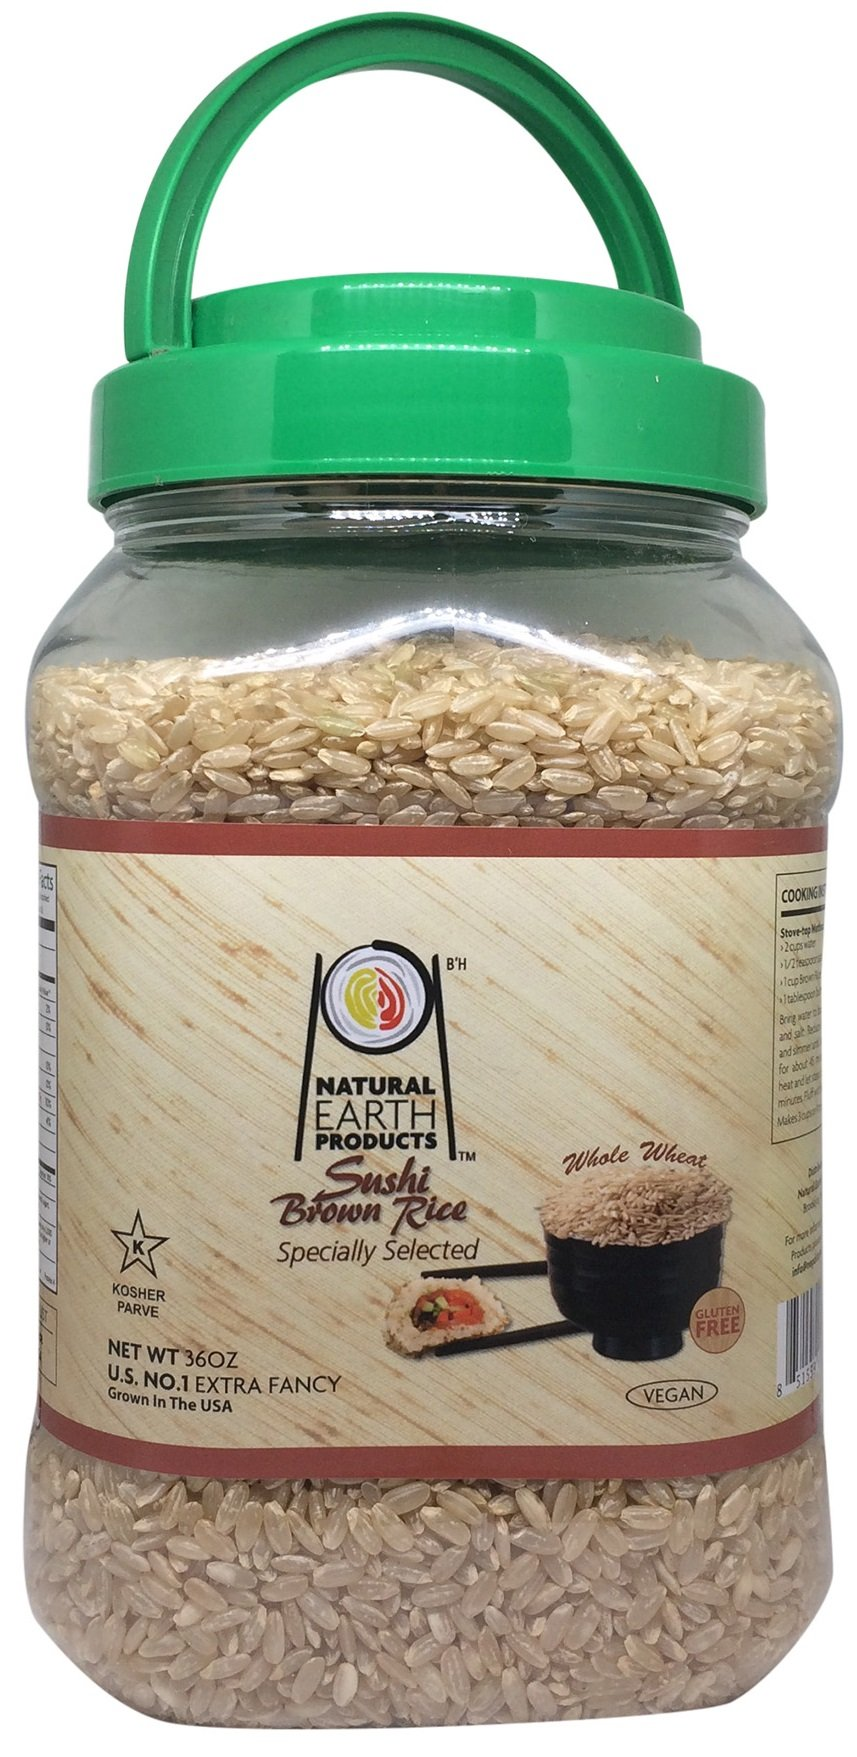 Natural Earth Sushi Brown Rice - Whole Wheat, Vegan and Gluten Free - Certified Kosher, 36 Oz.